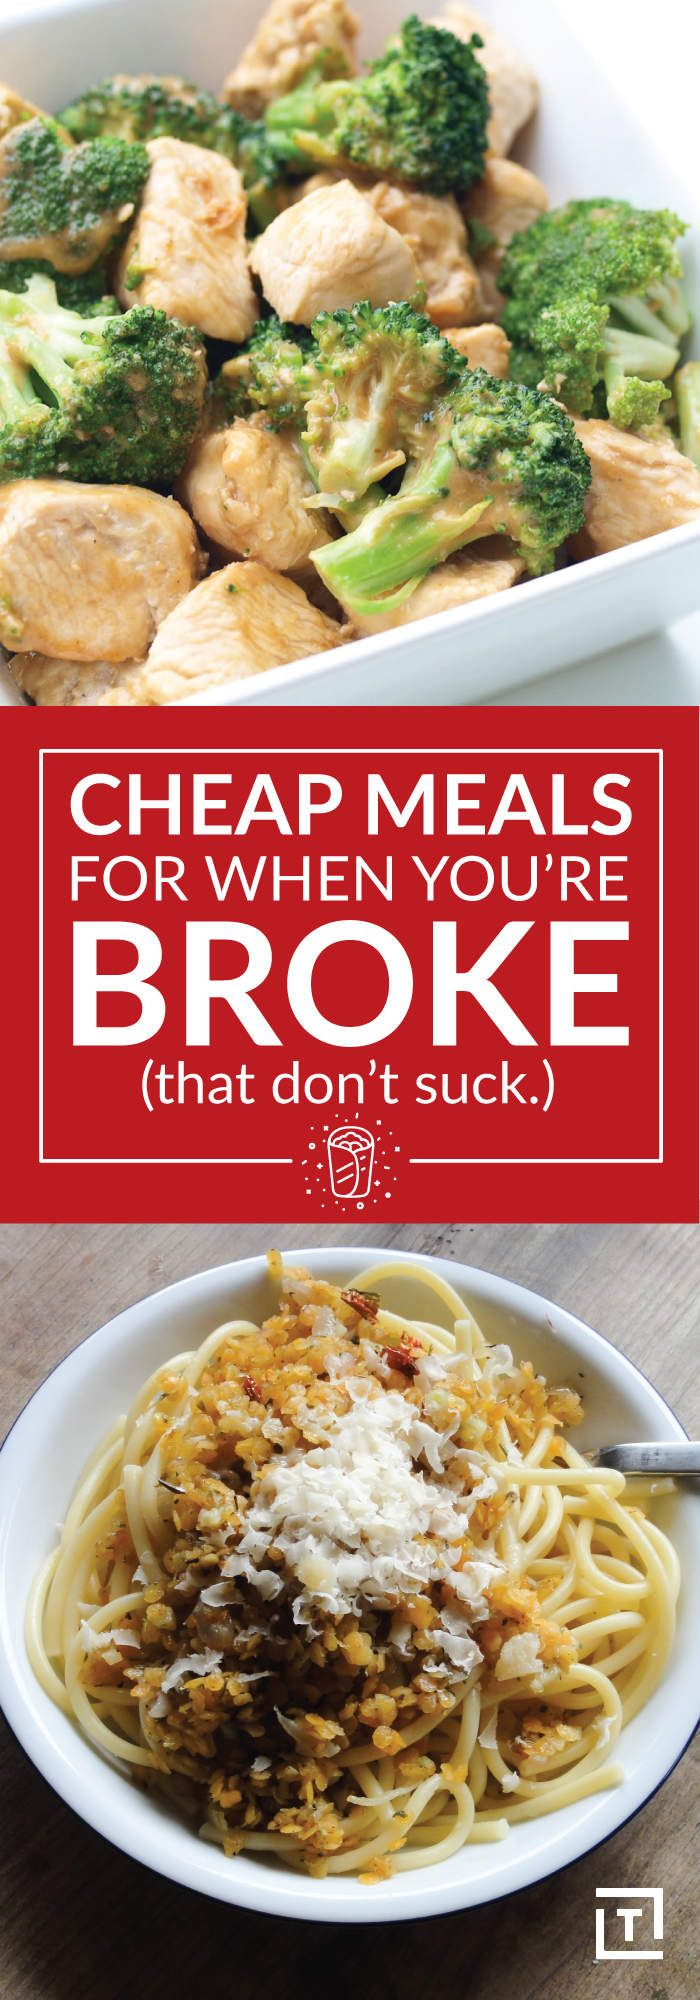 cheap meals for when you're broke (that don't suck) | eats